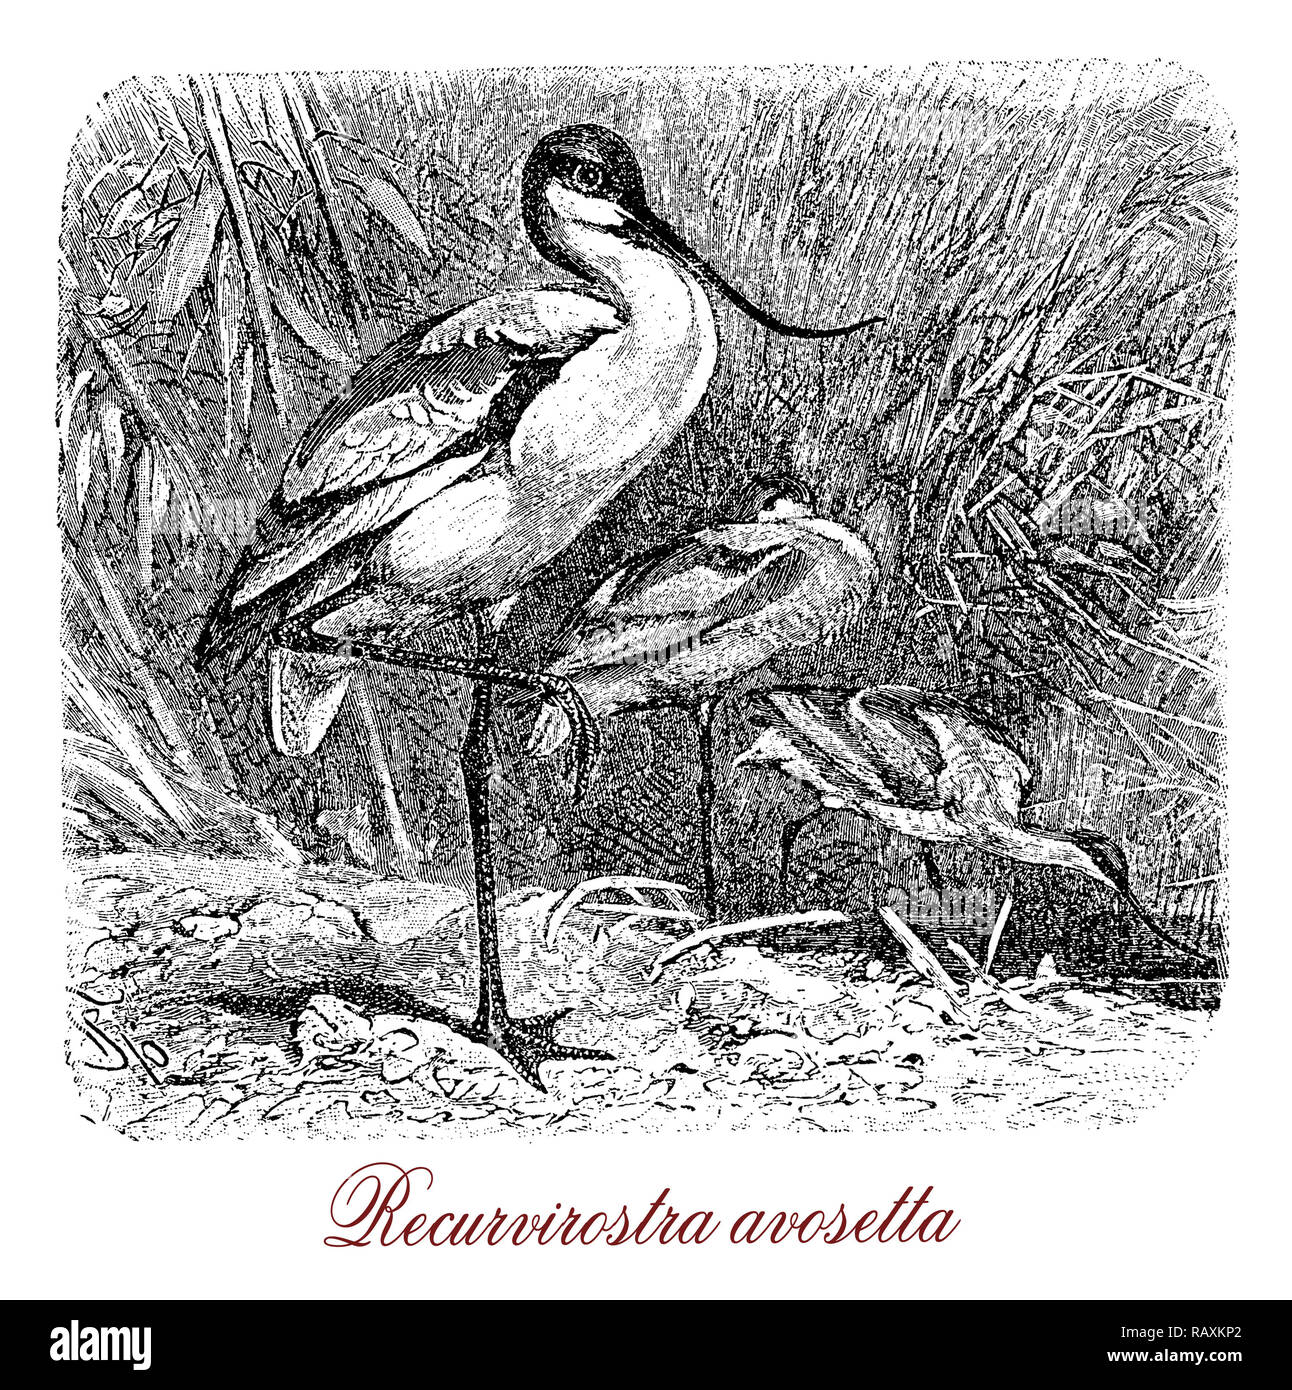 Vintage engraving of Pied avocet, large migratory black-capped shorebird with long upturned bill and long blue legs, eating insects and crustaceans - Stock Image